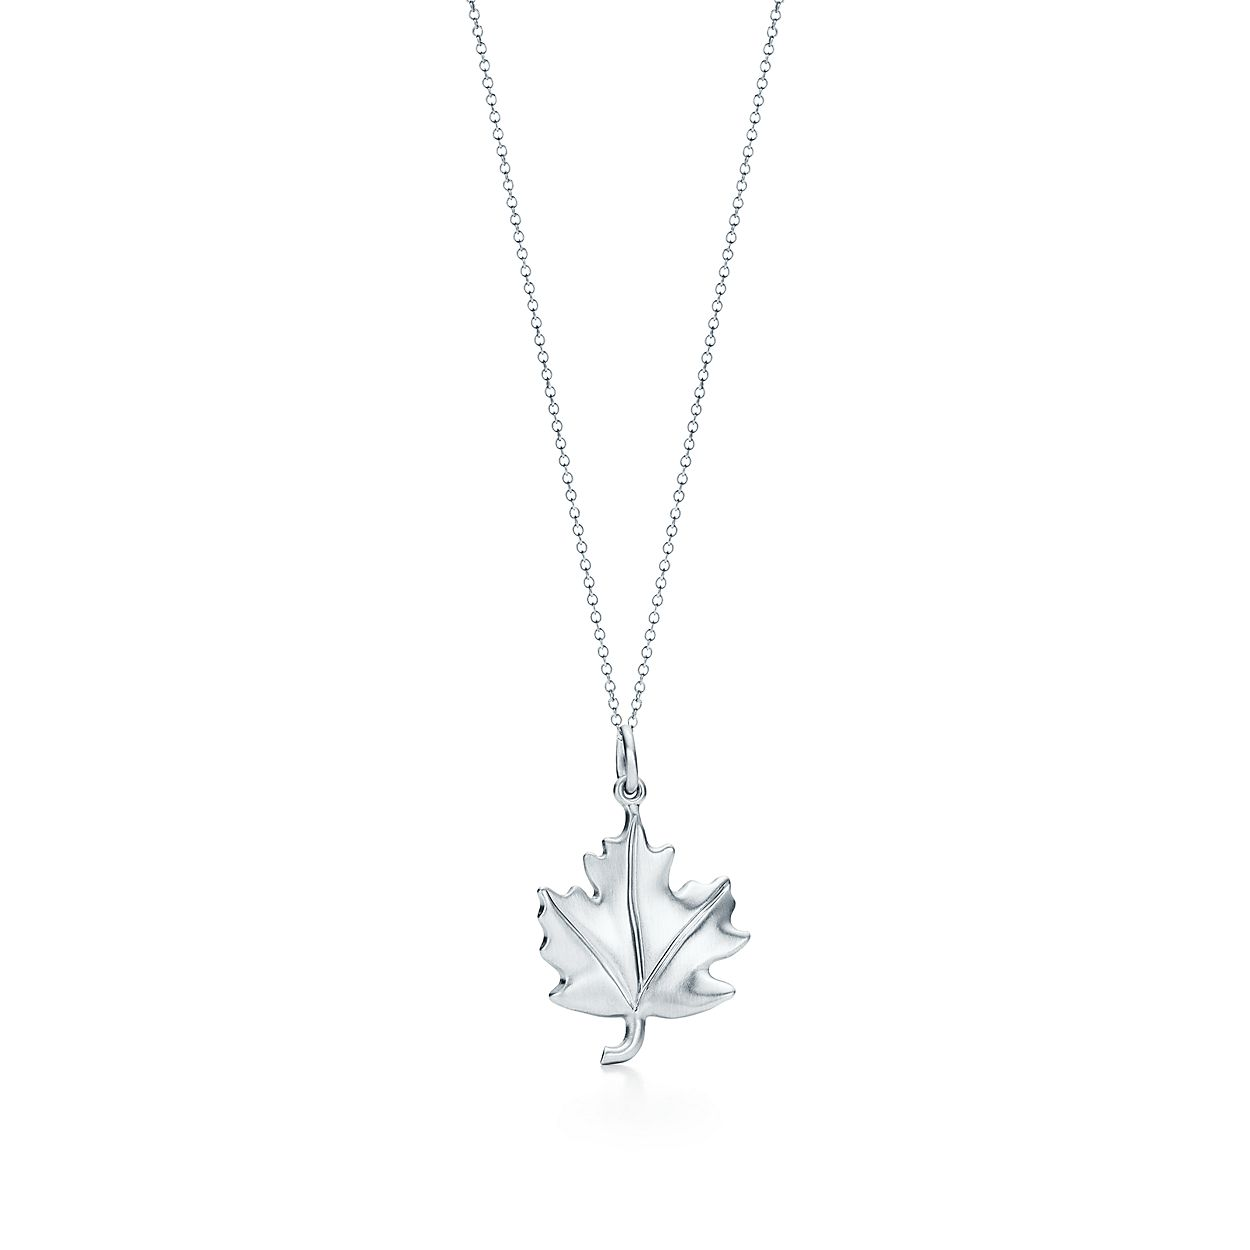 pendant tmr maple necklace jewelry tigr leaf marijuana yellow gold shop pameladonner sativa